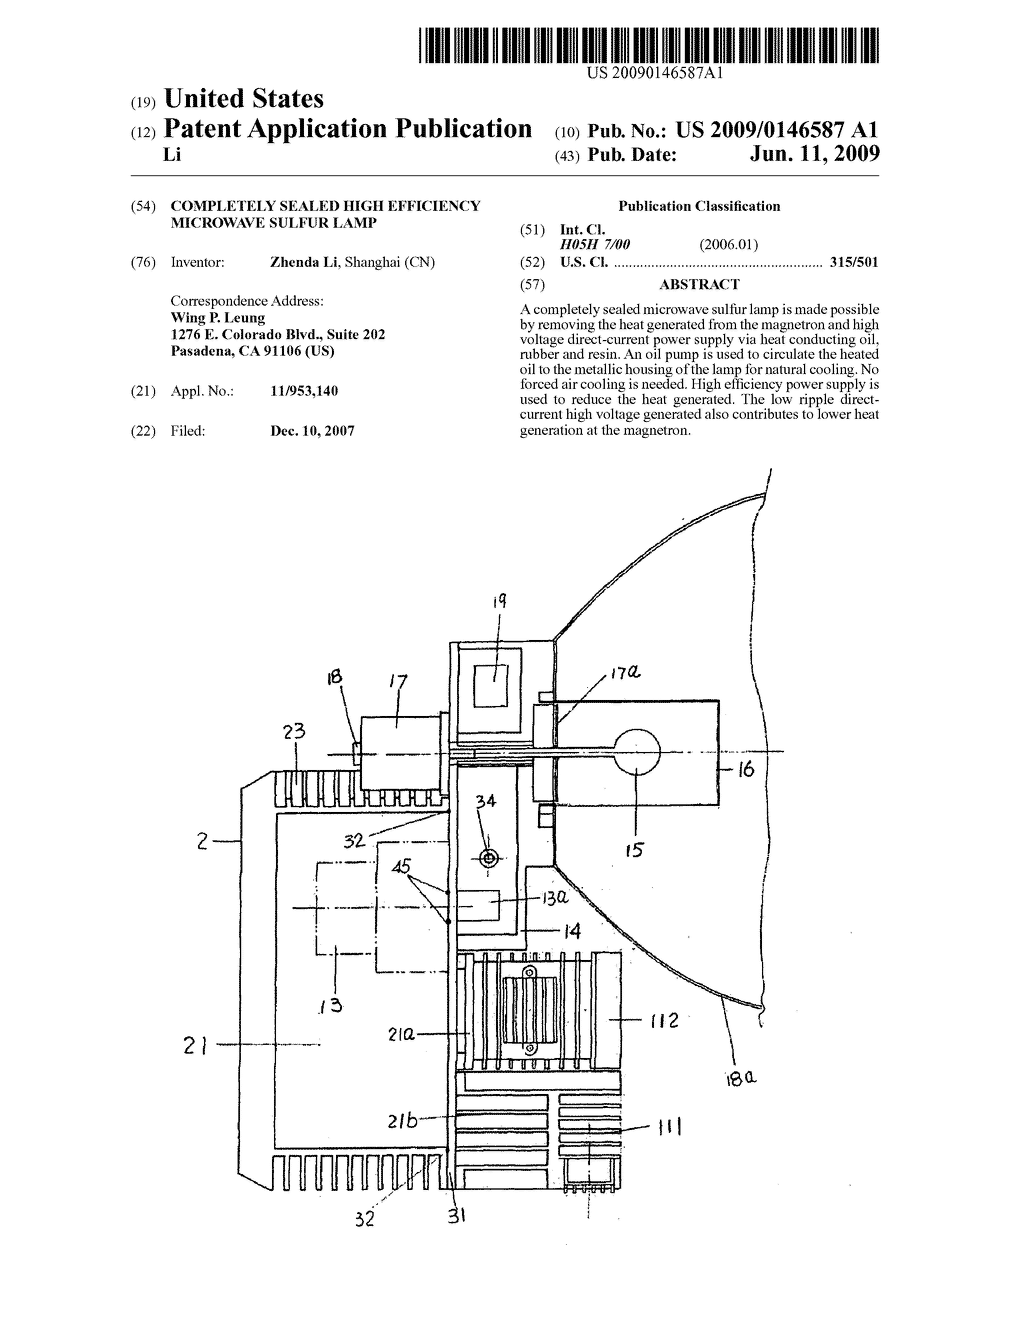 Completely Sealed High Efficiency Microwave Sulfur Lamp Diagram Wiring Schematic And Image 01